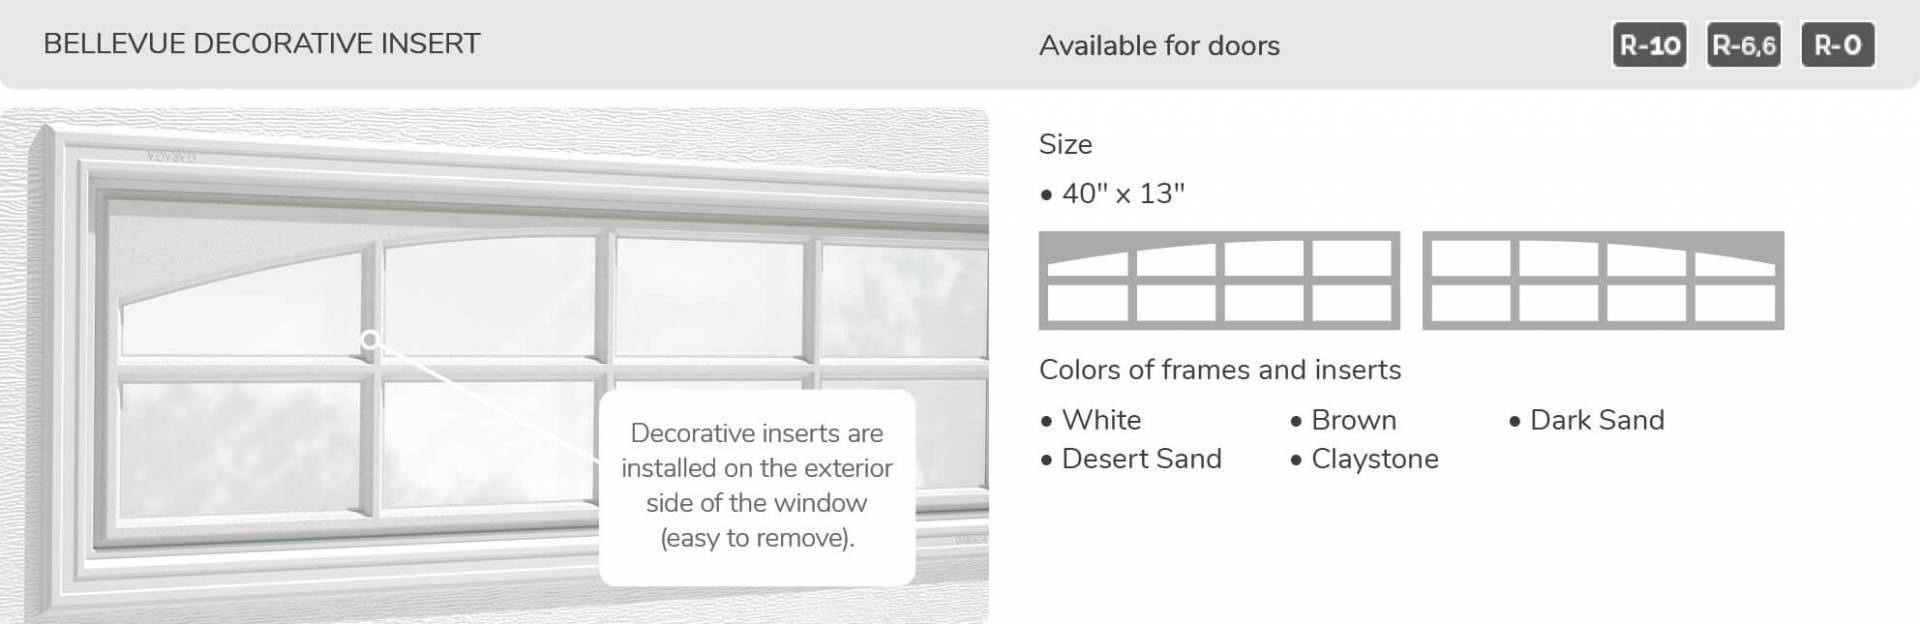 Bellevue Decorative Insert, 40' x 13', available for doors R-10, R-6.6, R-0